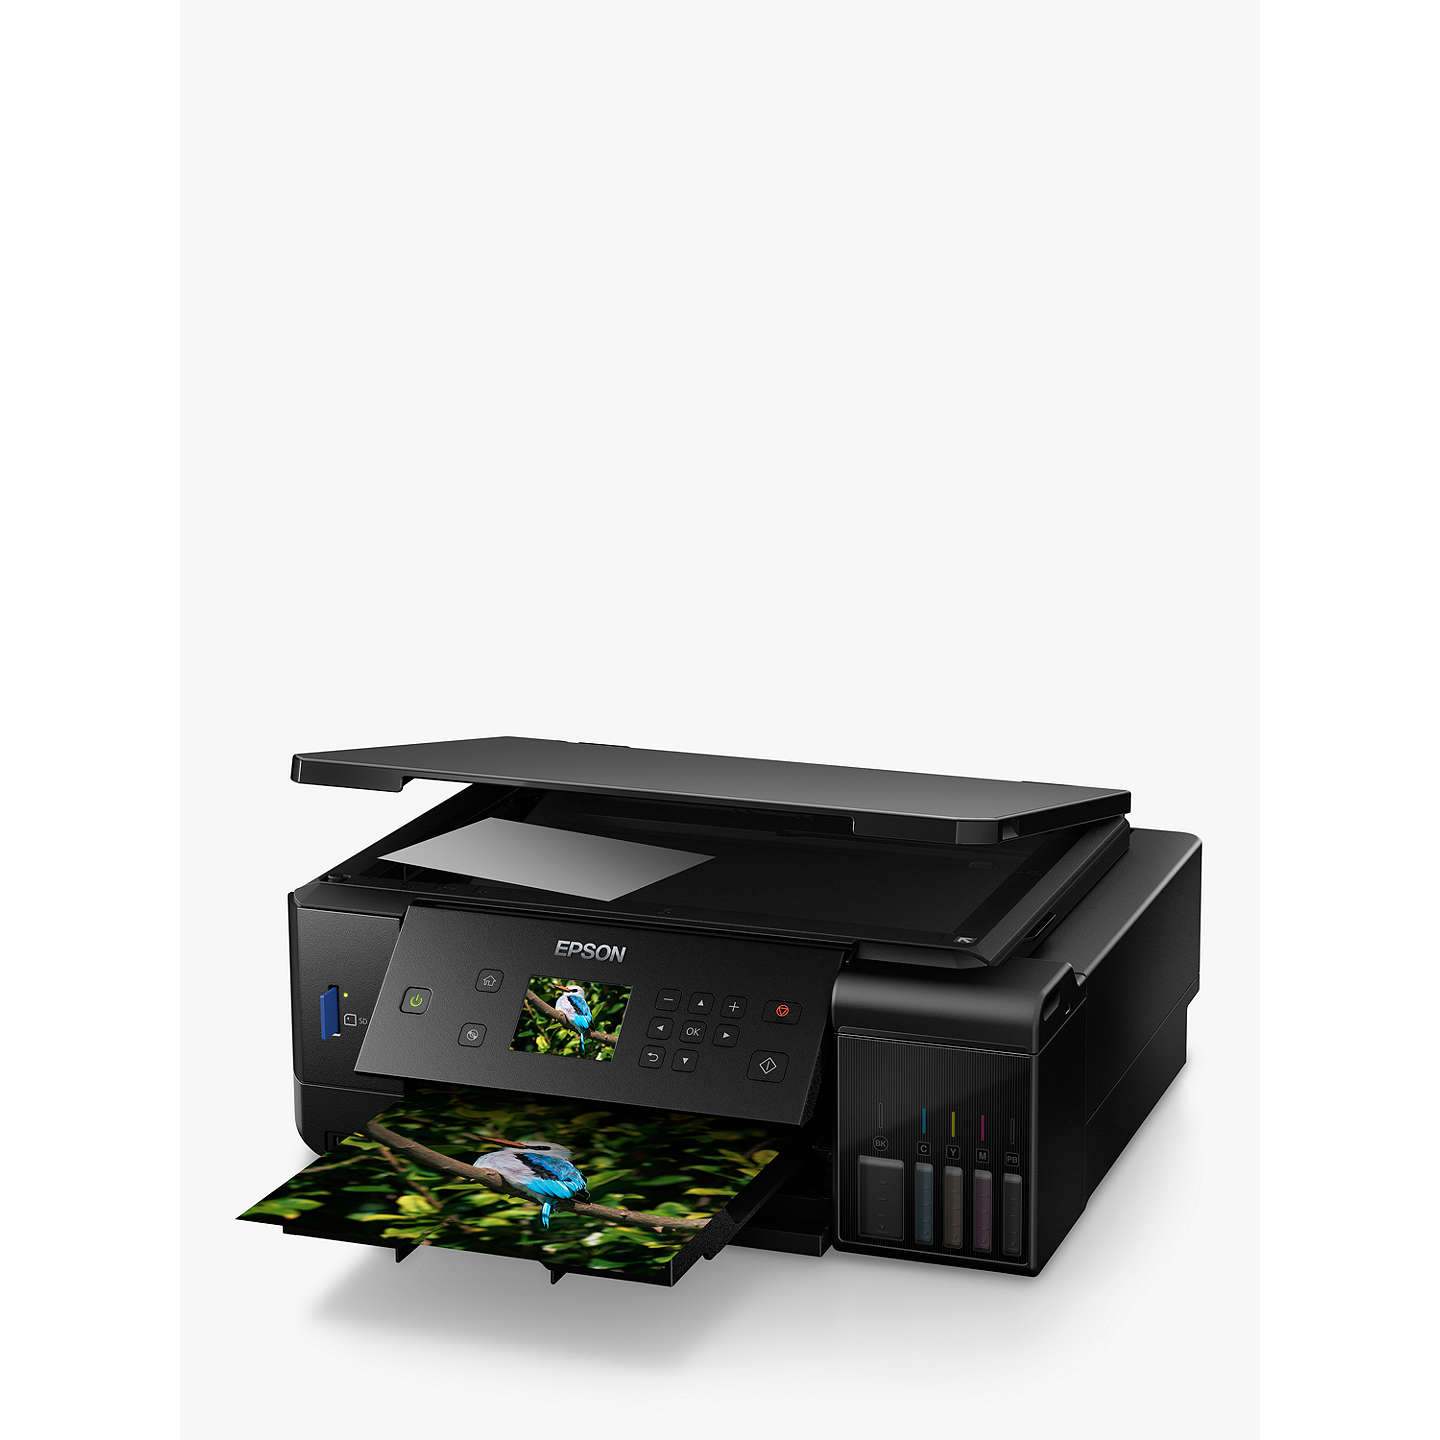 BuyEpson Ecotank ET-7700 Three-In-One Wi-Fi Printer with High Capacity Integrated Ink Tank System & 2 Years Ink Supply Included Online at johnlewis.com